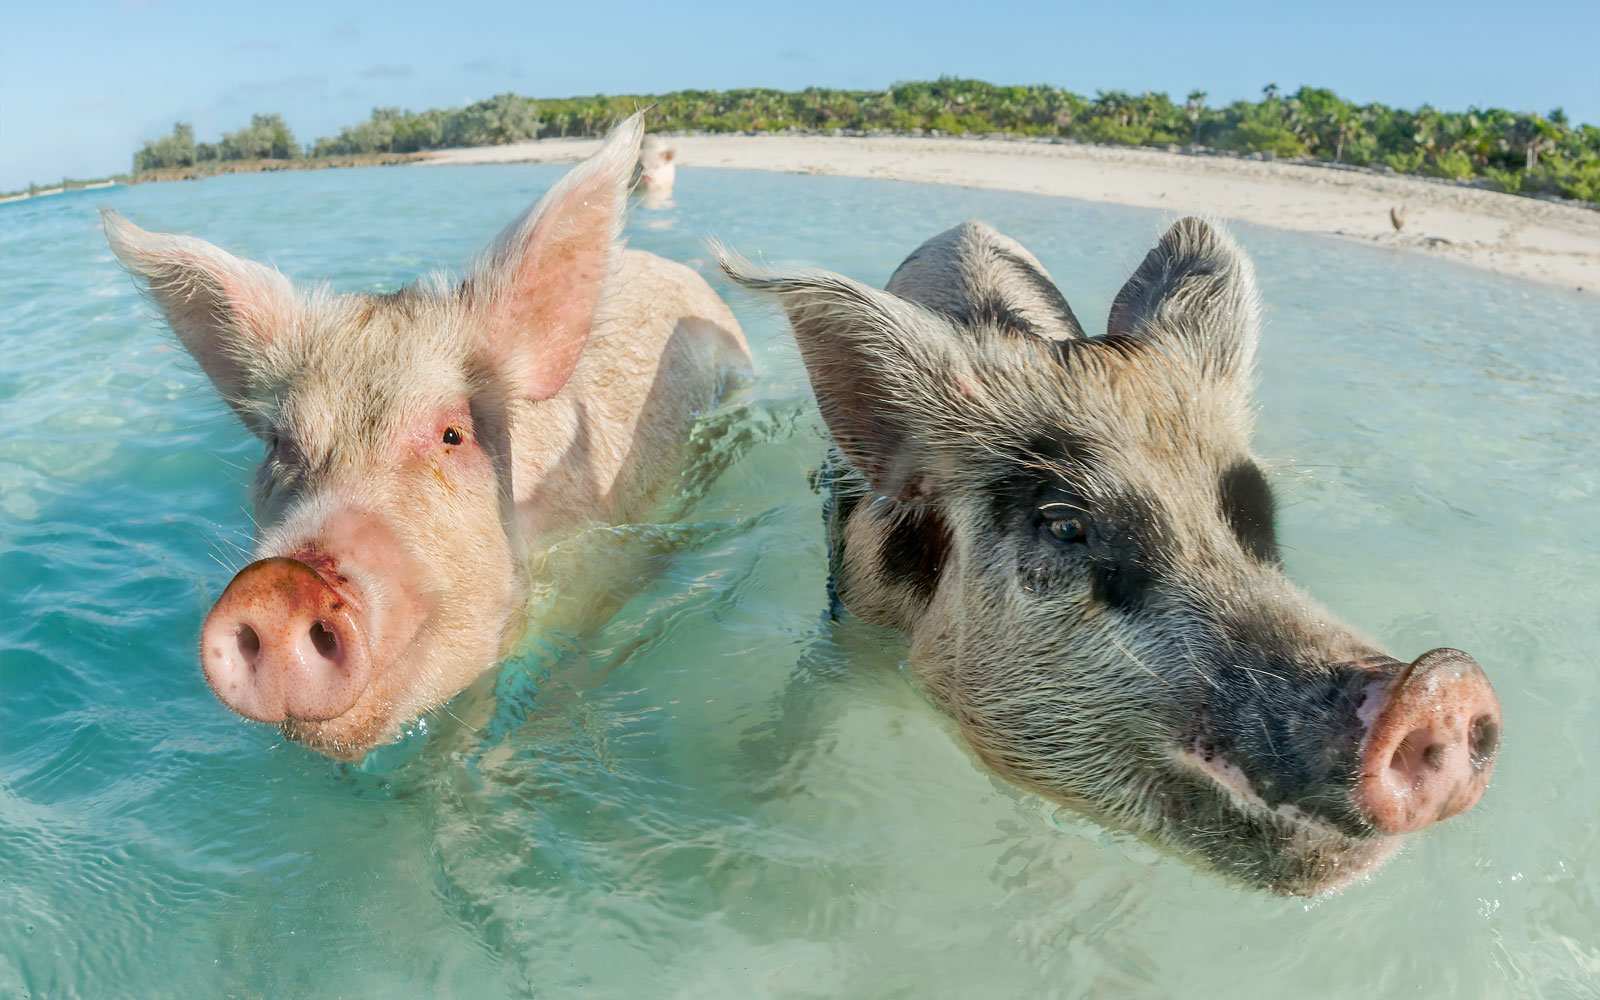 More Than a Dozen Exuma Pigs Found Dead